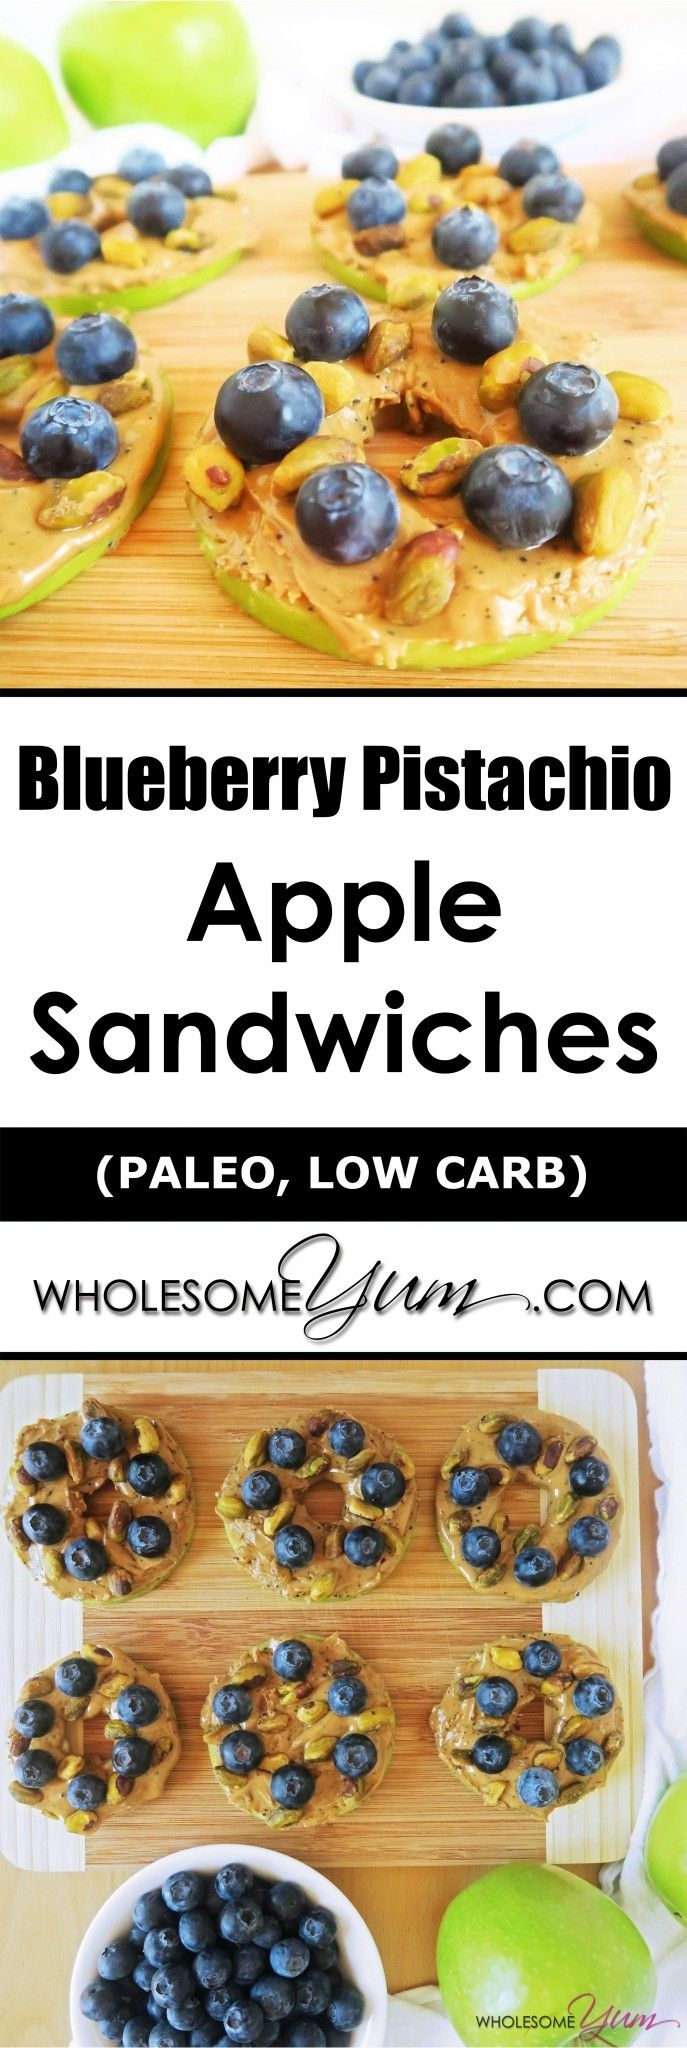 Blueberry Pistachio Apple Sandwiches (Paleo, Low Carb) | Wholesome Yum - Natural, gluten-free, low carb recipes